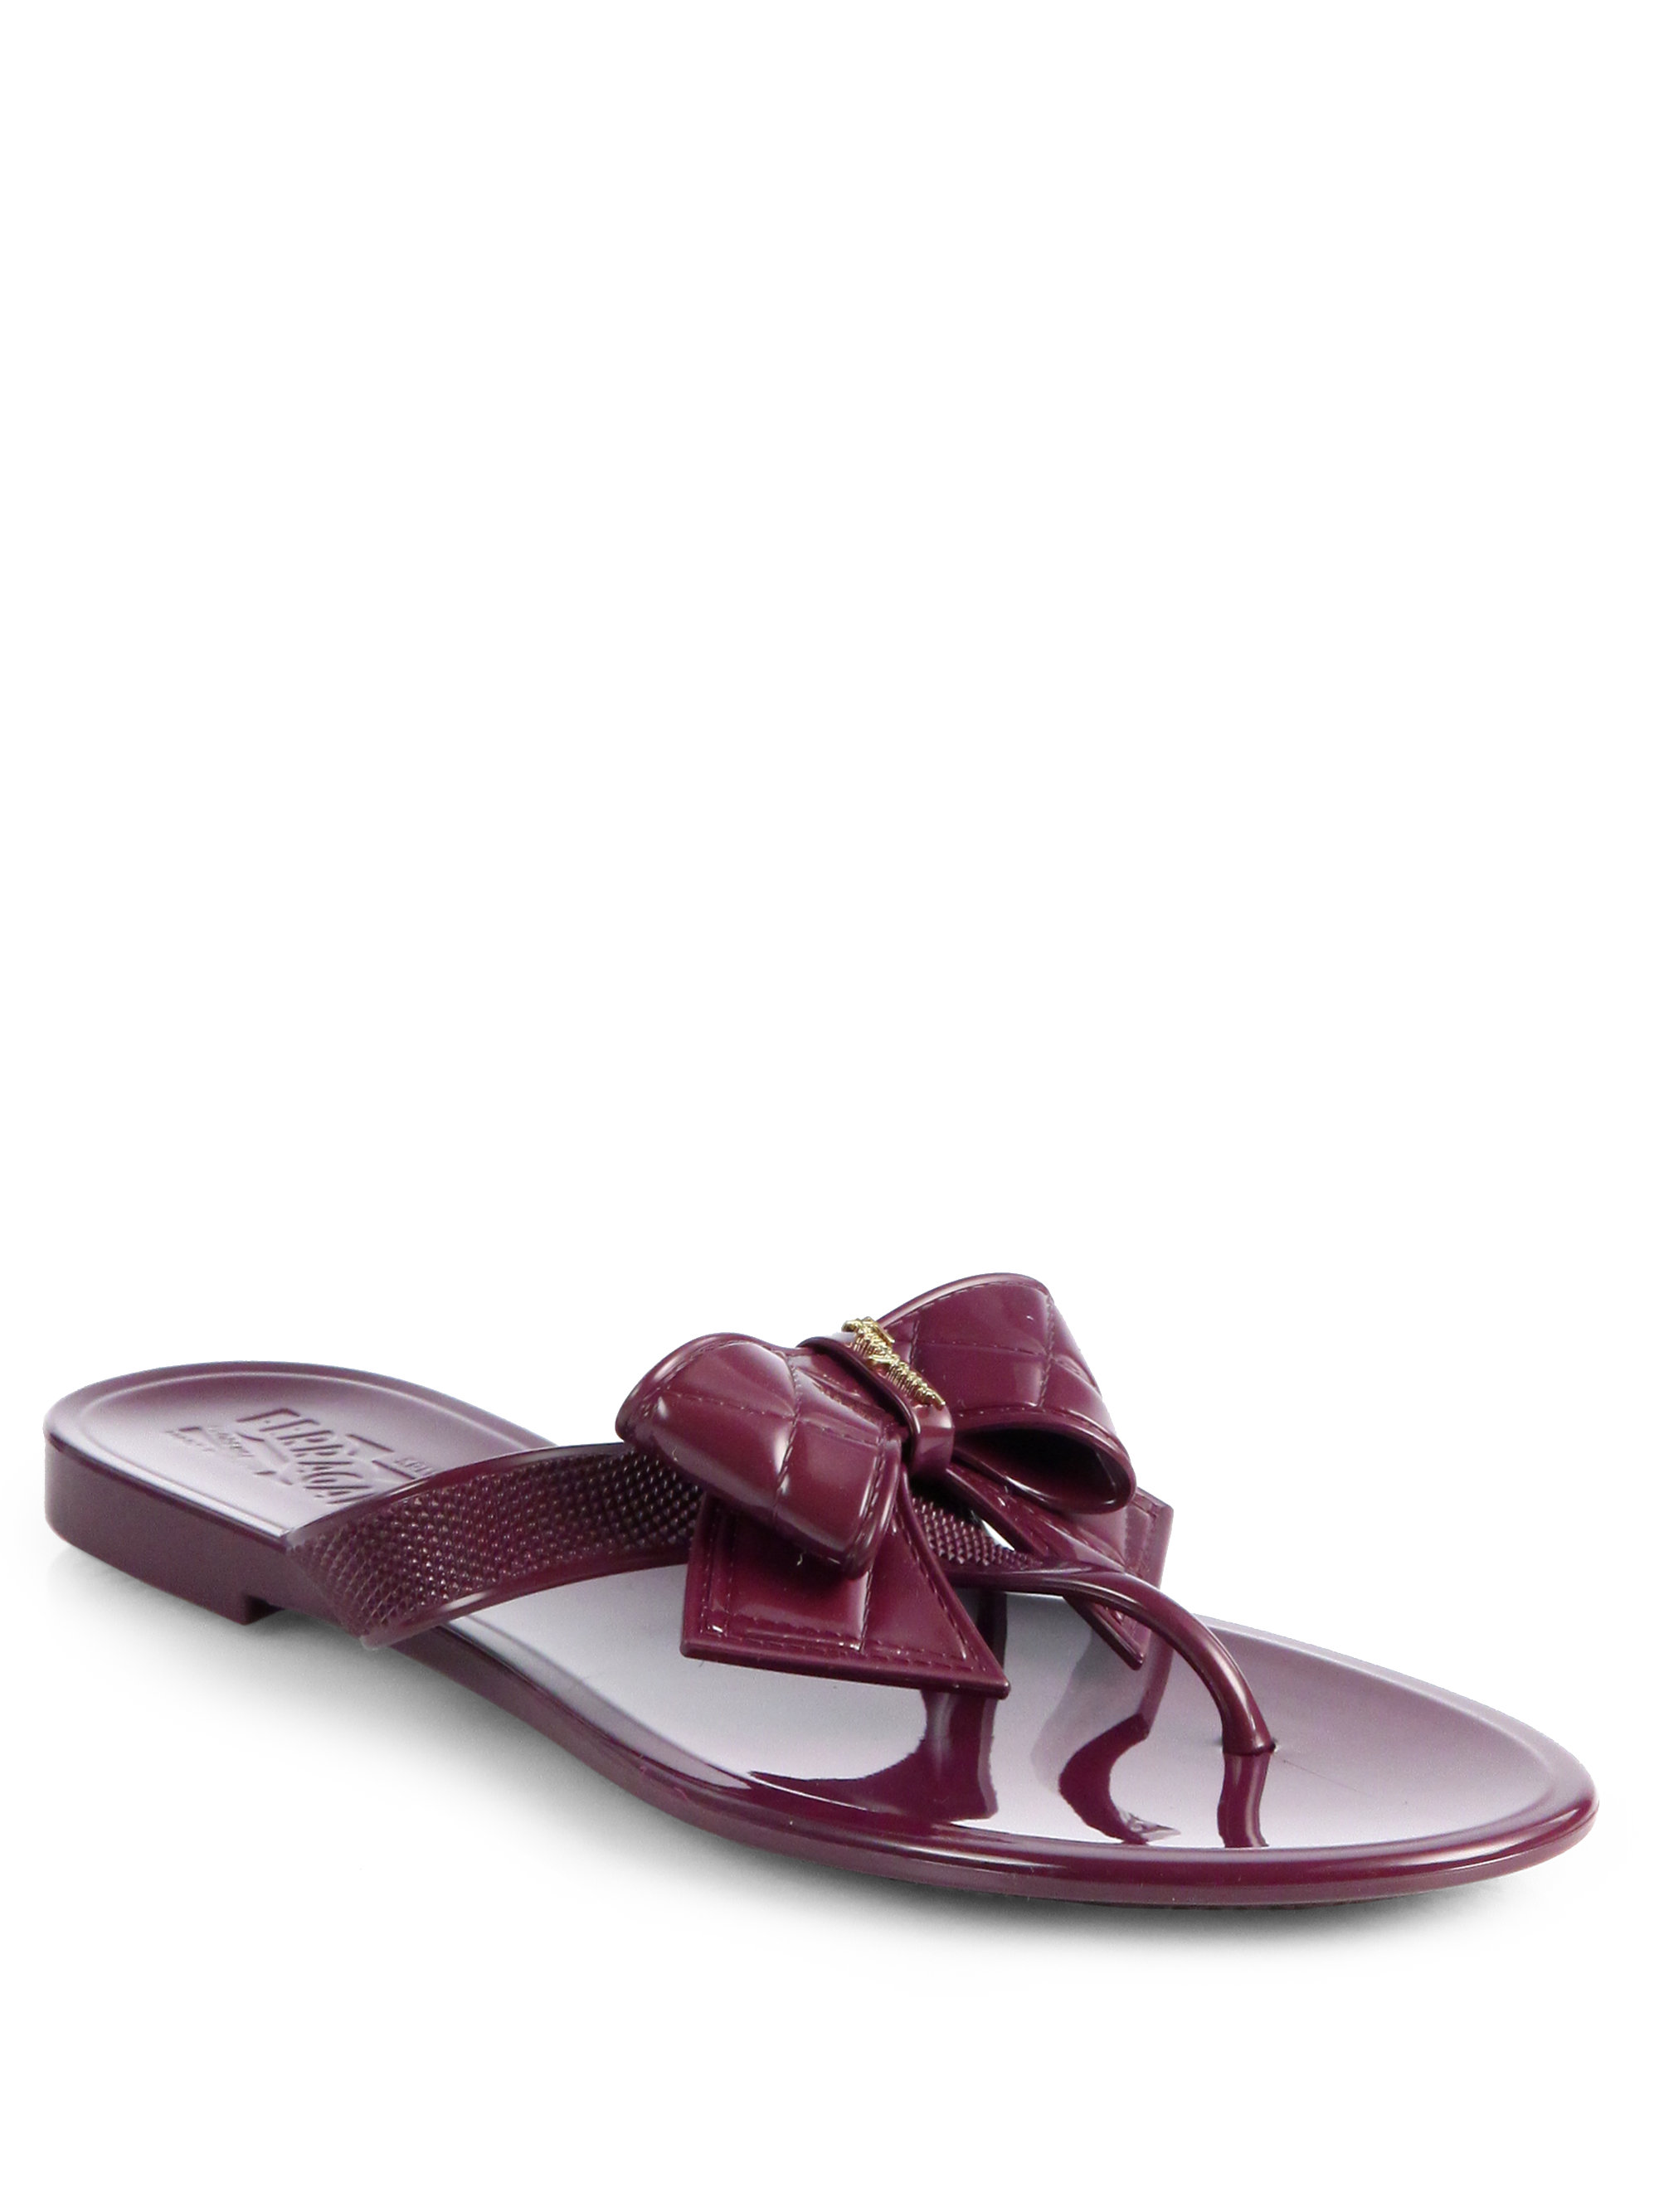 Lyst Ferragamo Bali Jelly Bow Thong Sandals In Purple